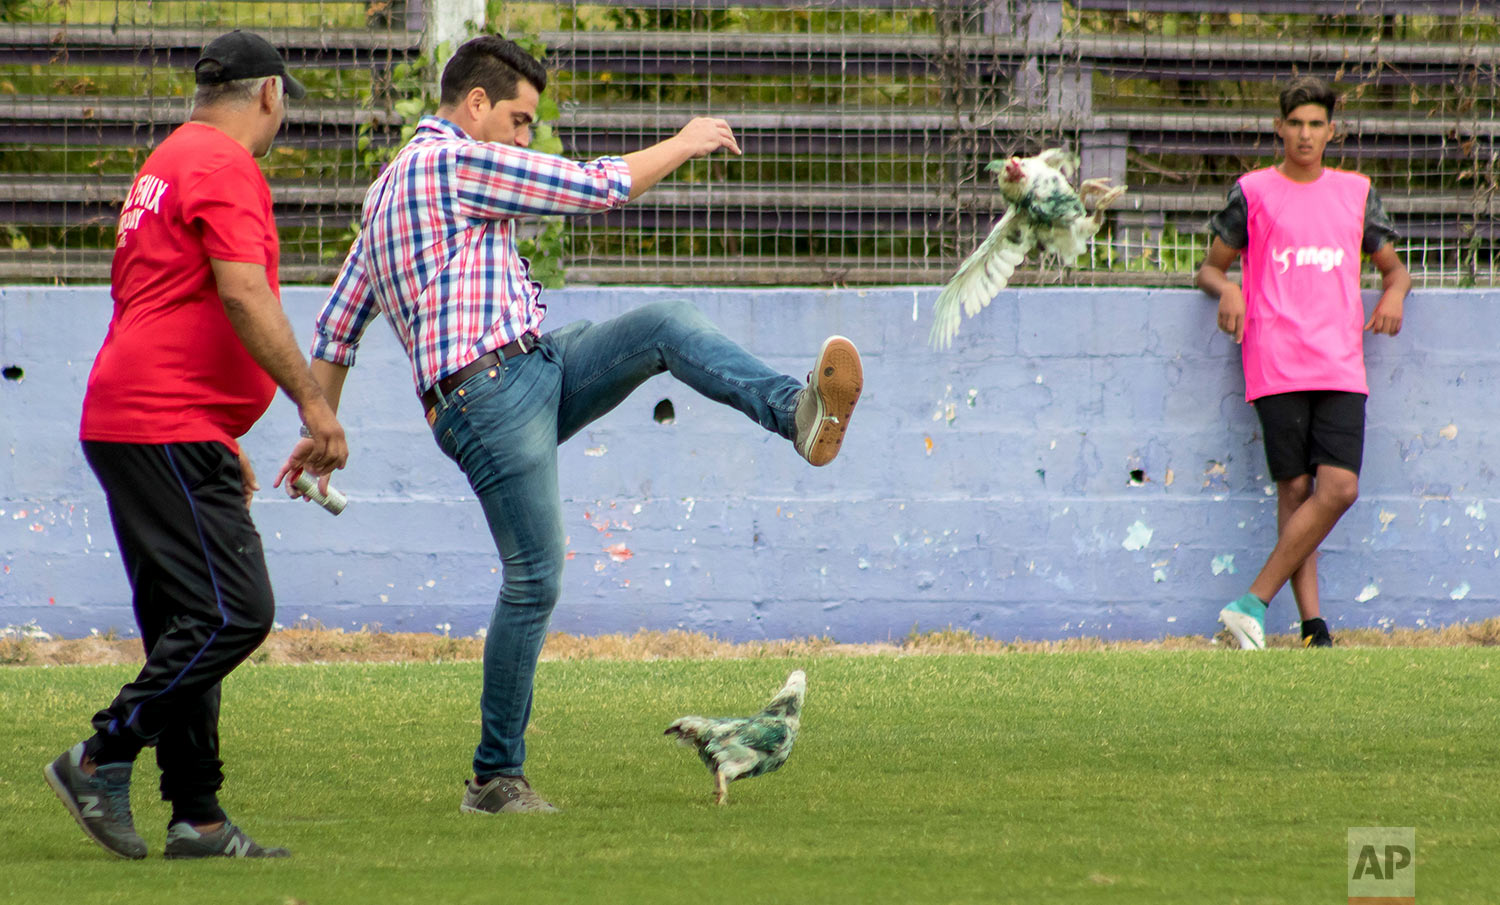 Fenix first-division club director Gaston Alegari kicks a hen after supporters from his club threw two chickens painted in white and green, the colors of the opponents Racing, on to the field during their league soccer match, in Montevideo, Uruguay, Sunday, March 11, 2018. Uruguay's soccer association decided that Fenix will have to play one match away from their home stadium because of the incident. (AP Photo/Mauricio Castillo)